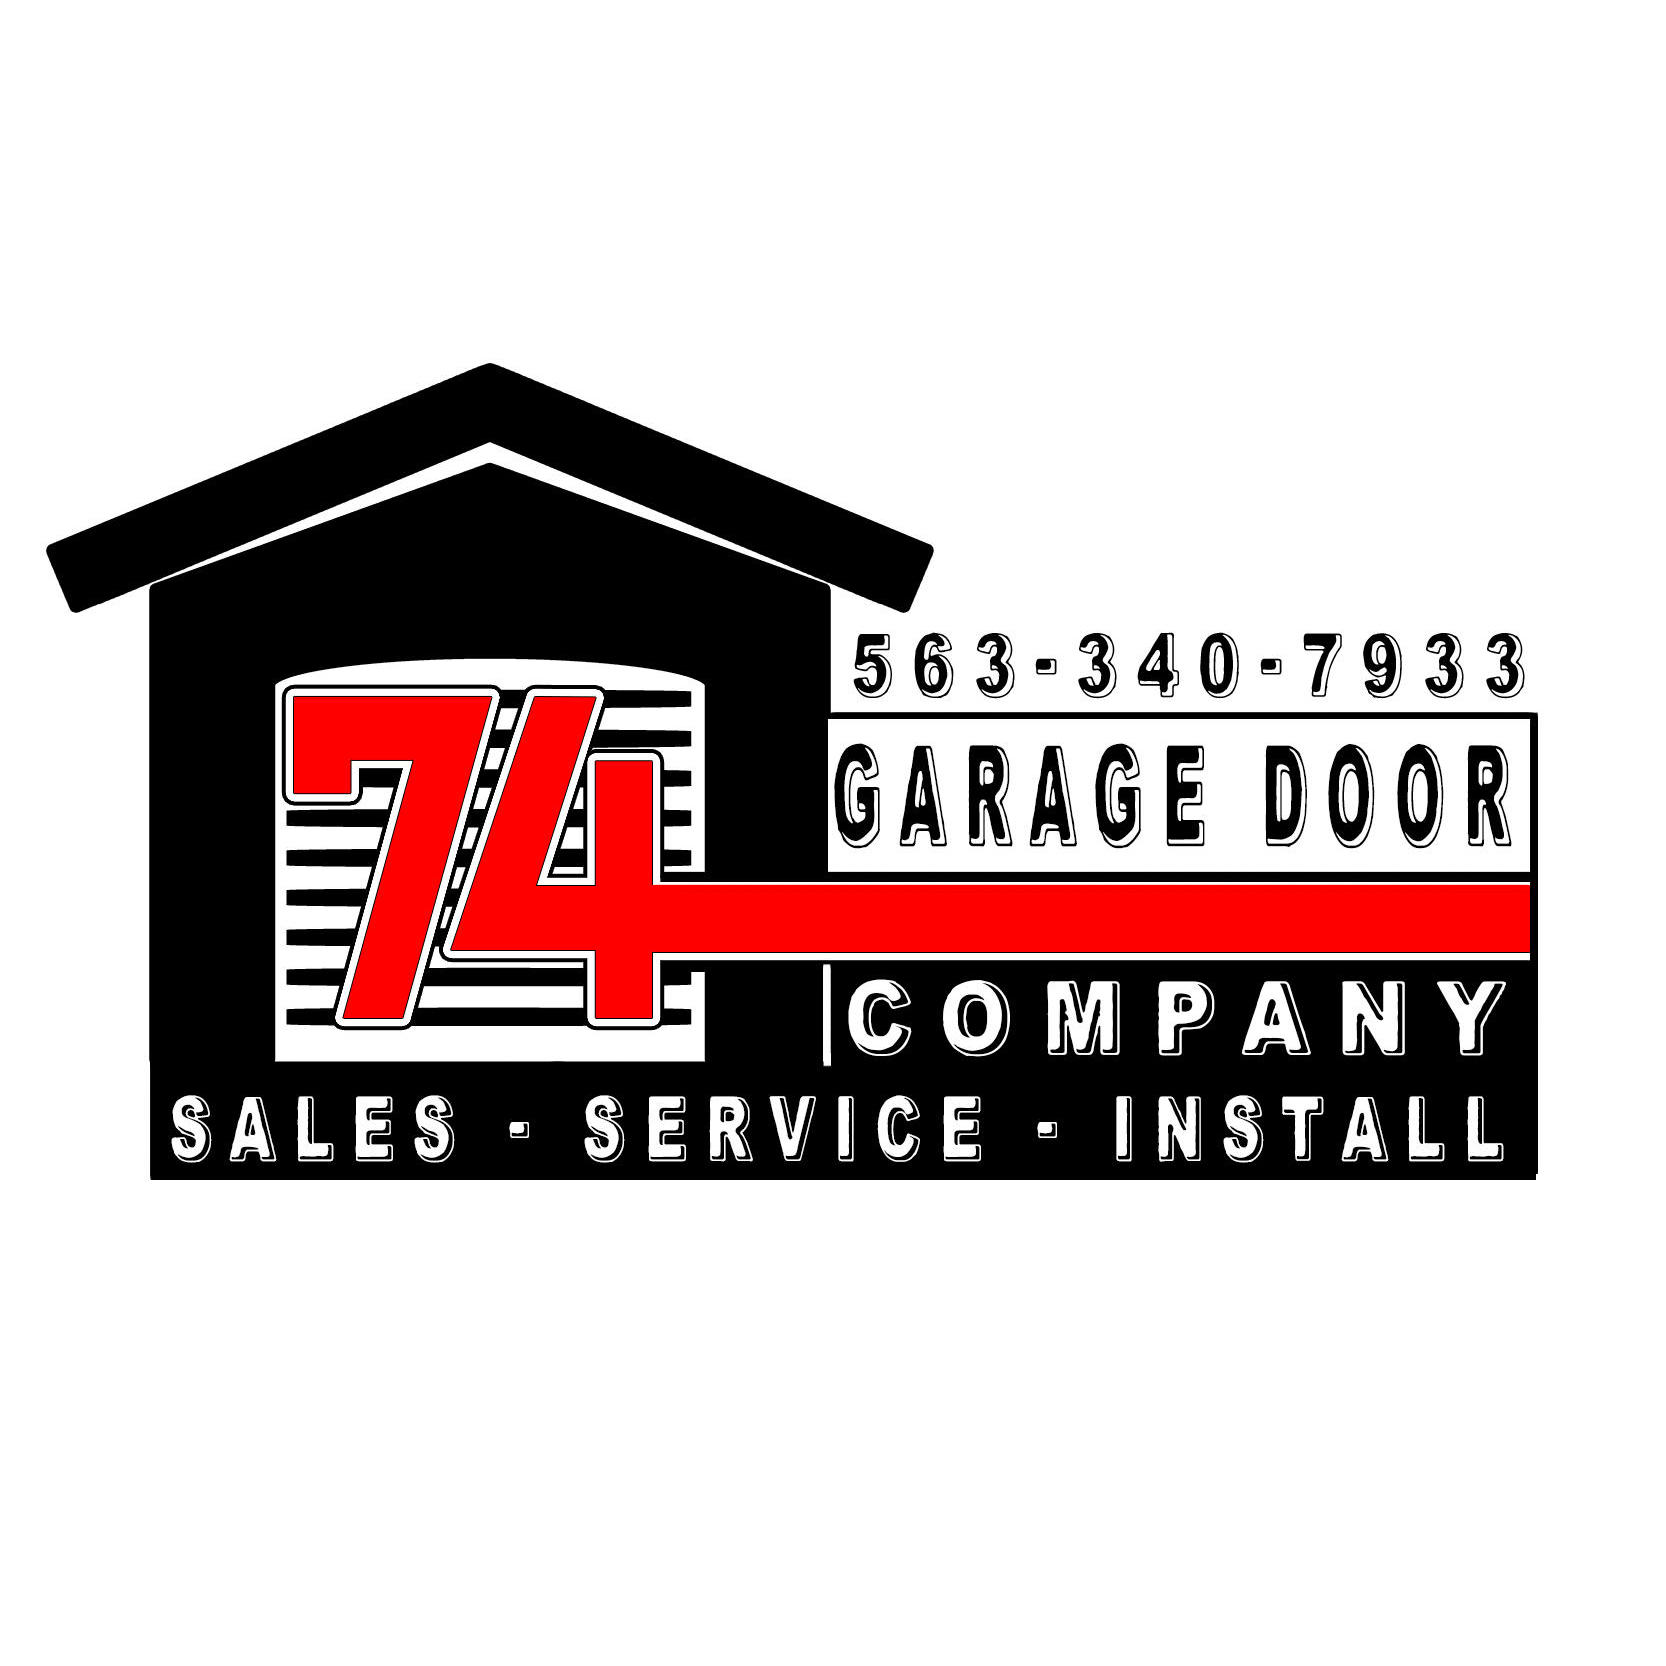 74 Garage Door Company